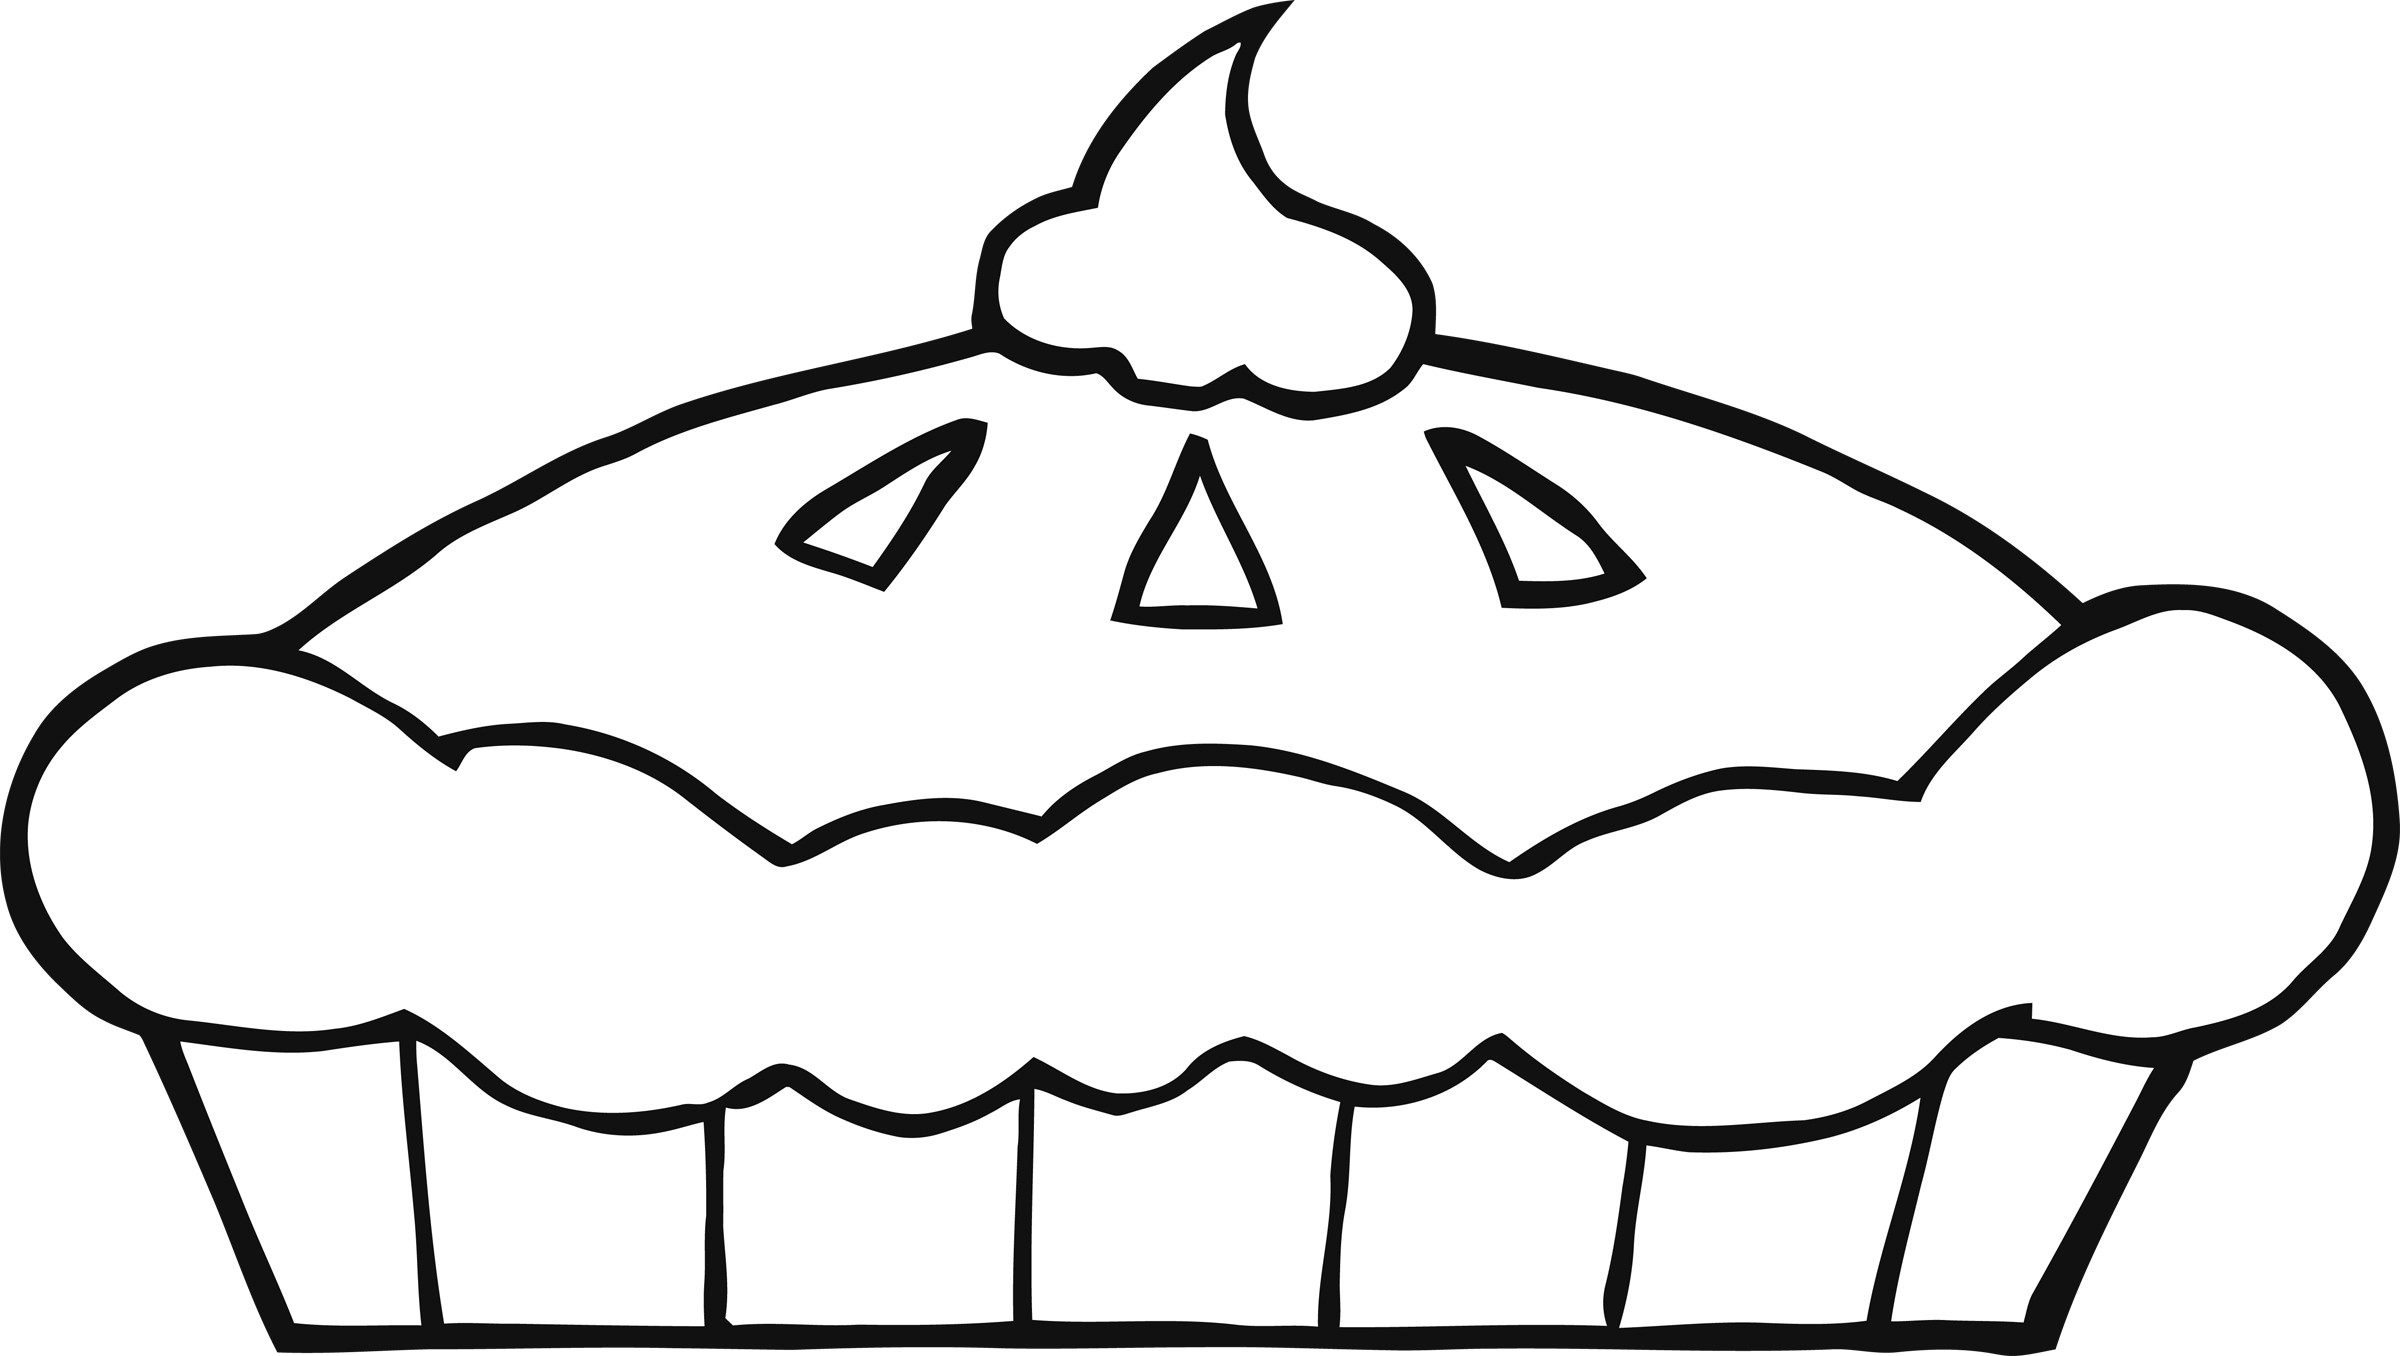 Pie Clipart Black And White | Clipart Panda - Free Clipart Images